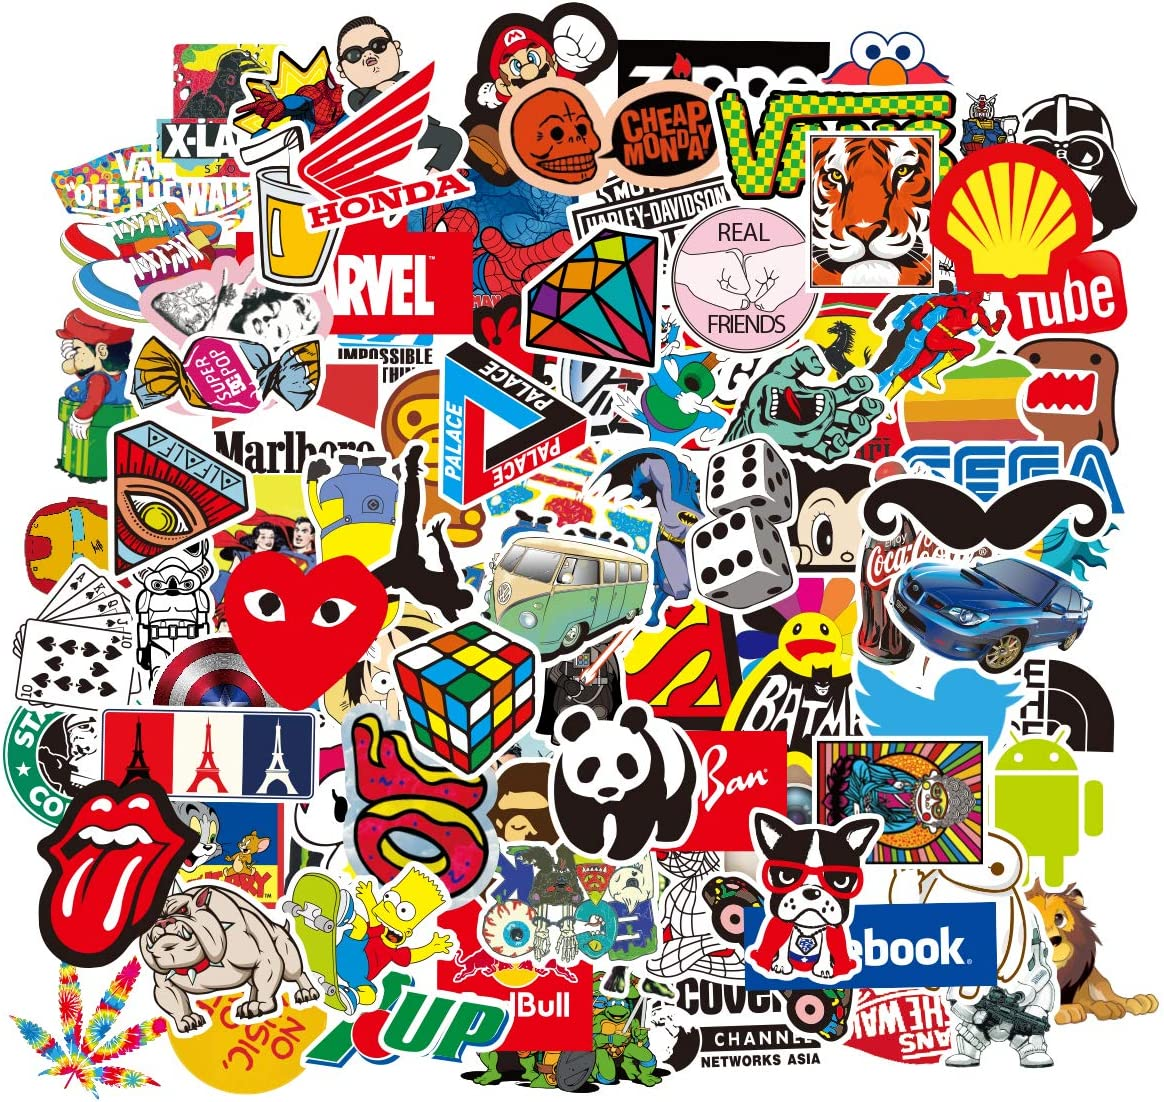 Water Bottle 100 Stickers Laptop Stickers Pack 100 Pcs Decals for Water Bottle Laptop Ipad Car Luggage Helmet